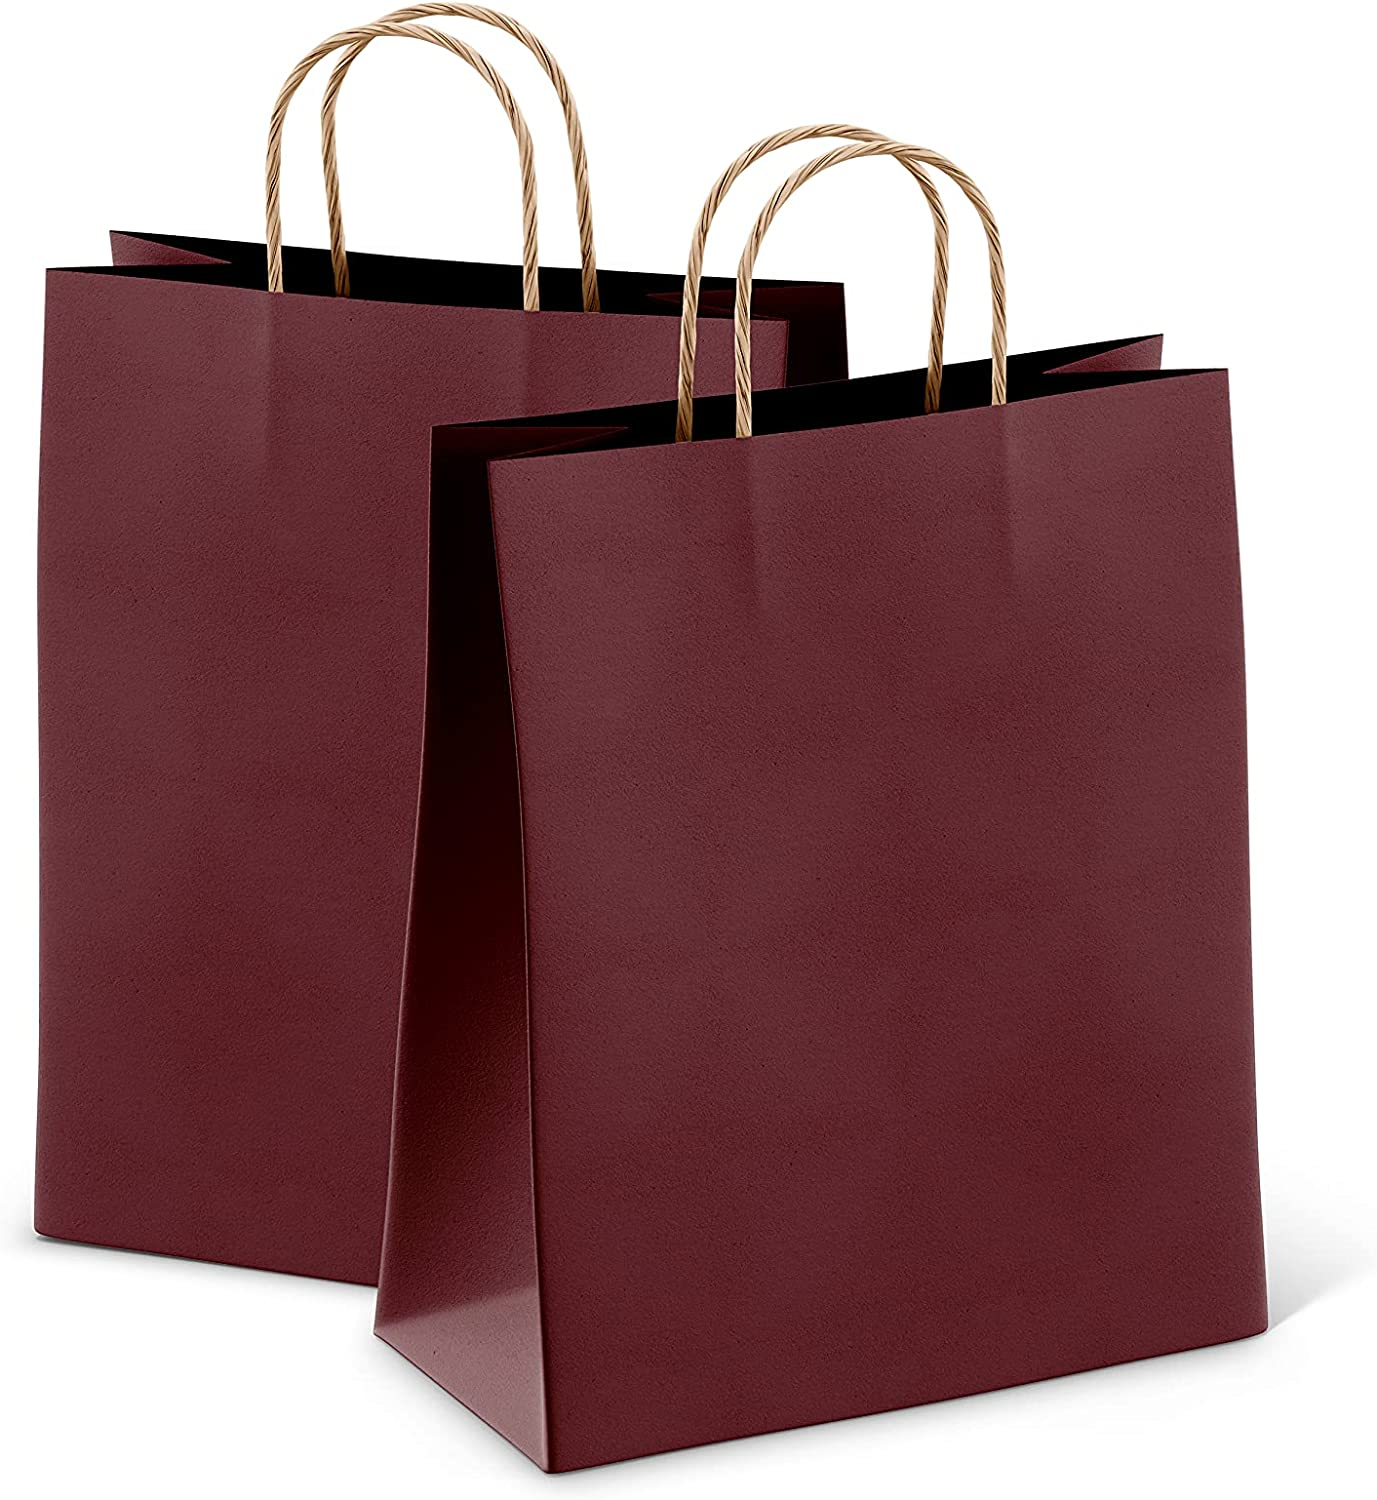 Amiff Genuine Pack of 25 Wine Shopping Paper 10.5 Bags 8 4.75 Sales SALE items from new works Kraft x